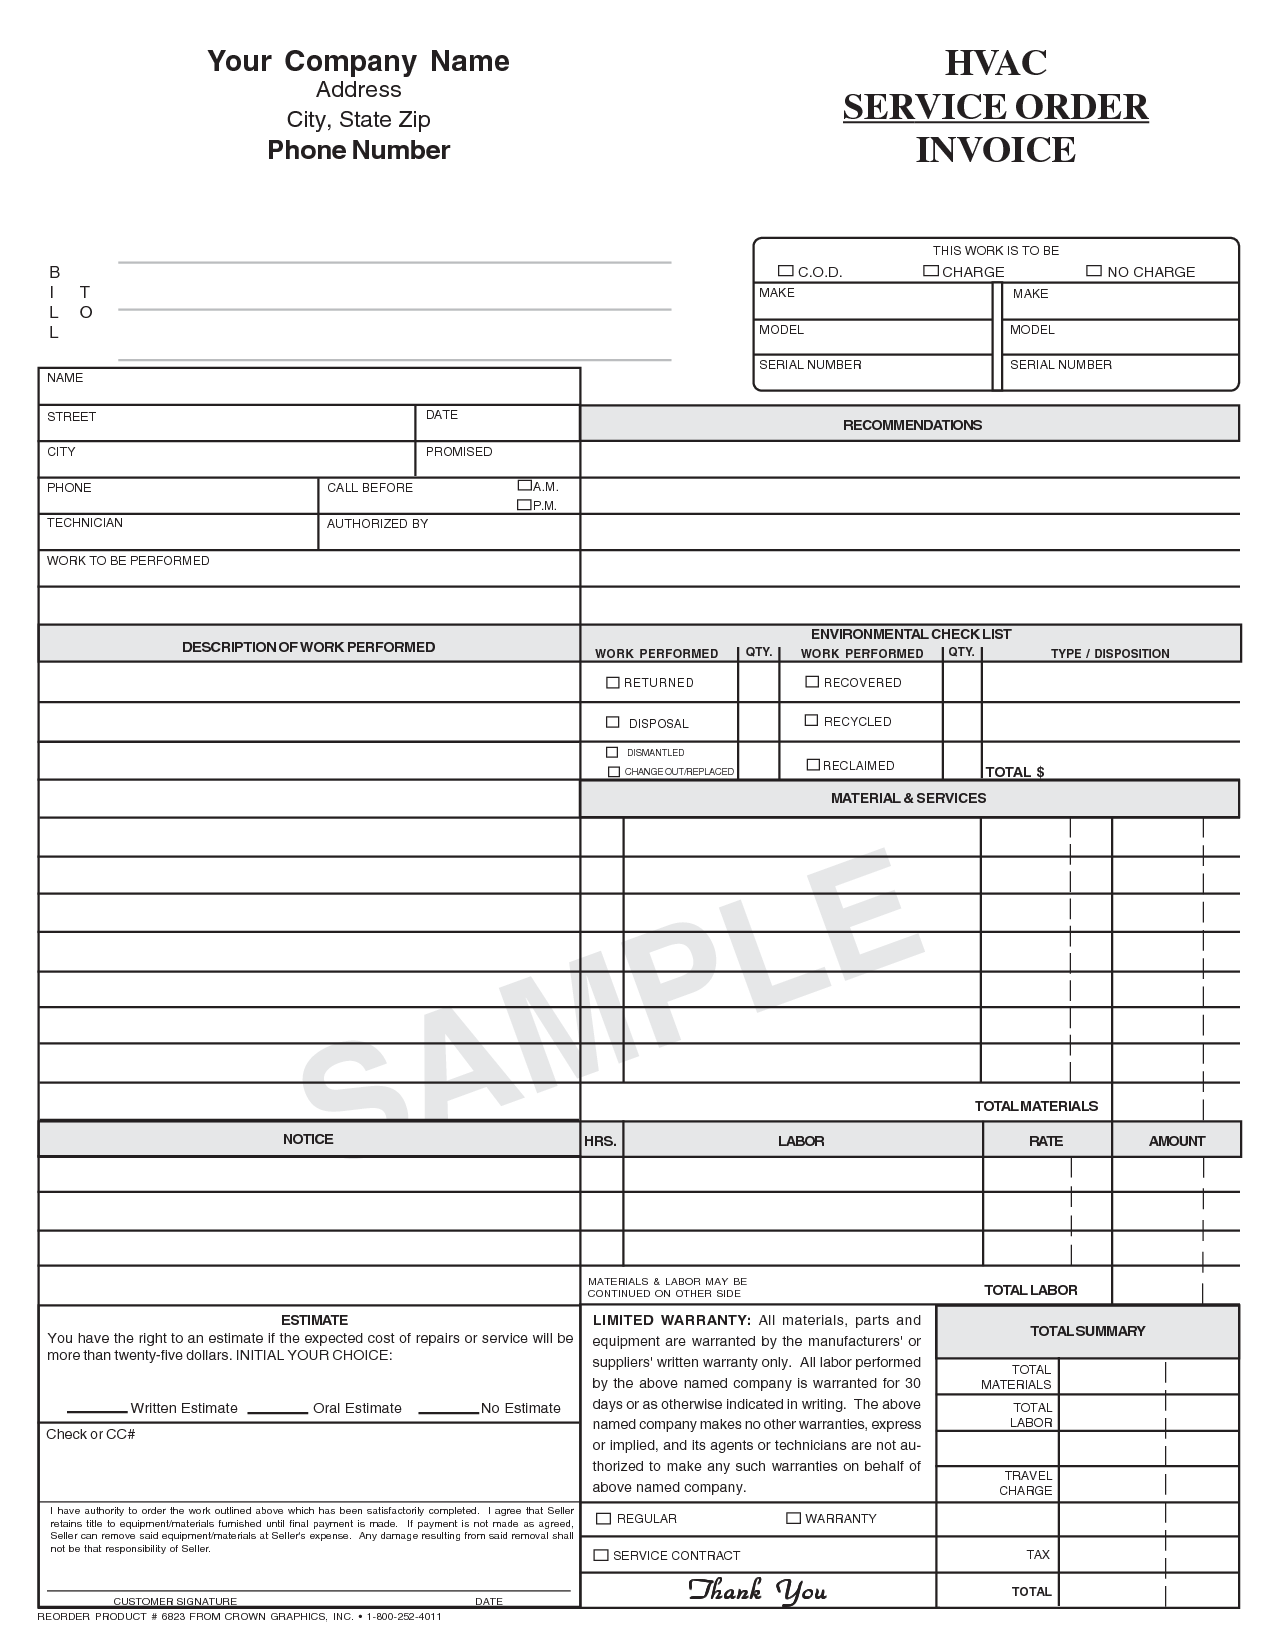 Hvac Invoice Template | printable invoice template